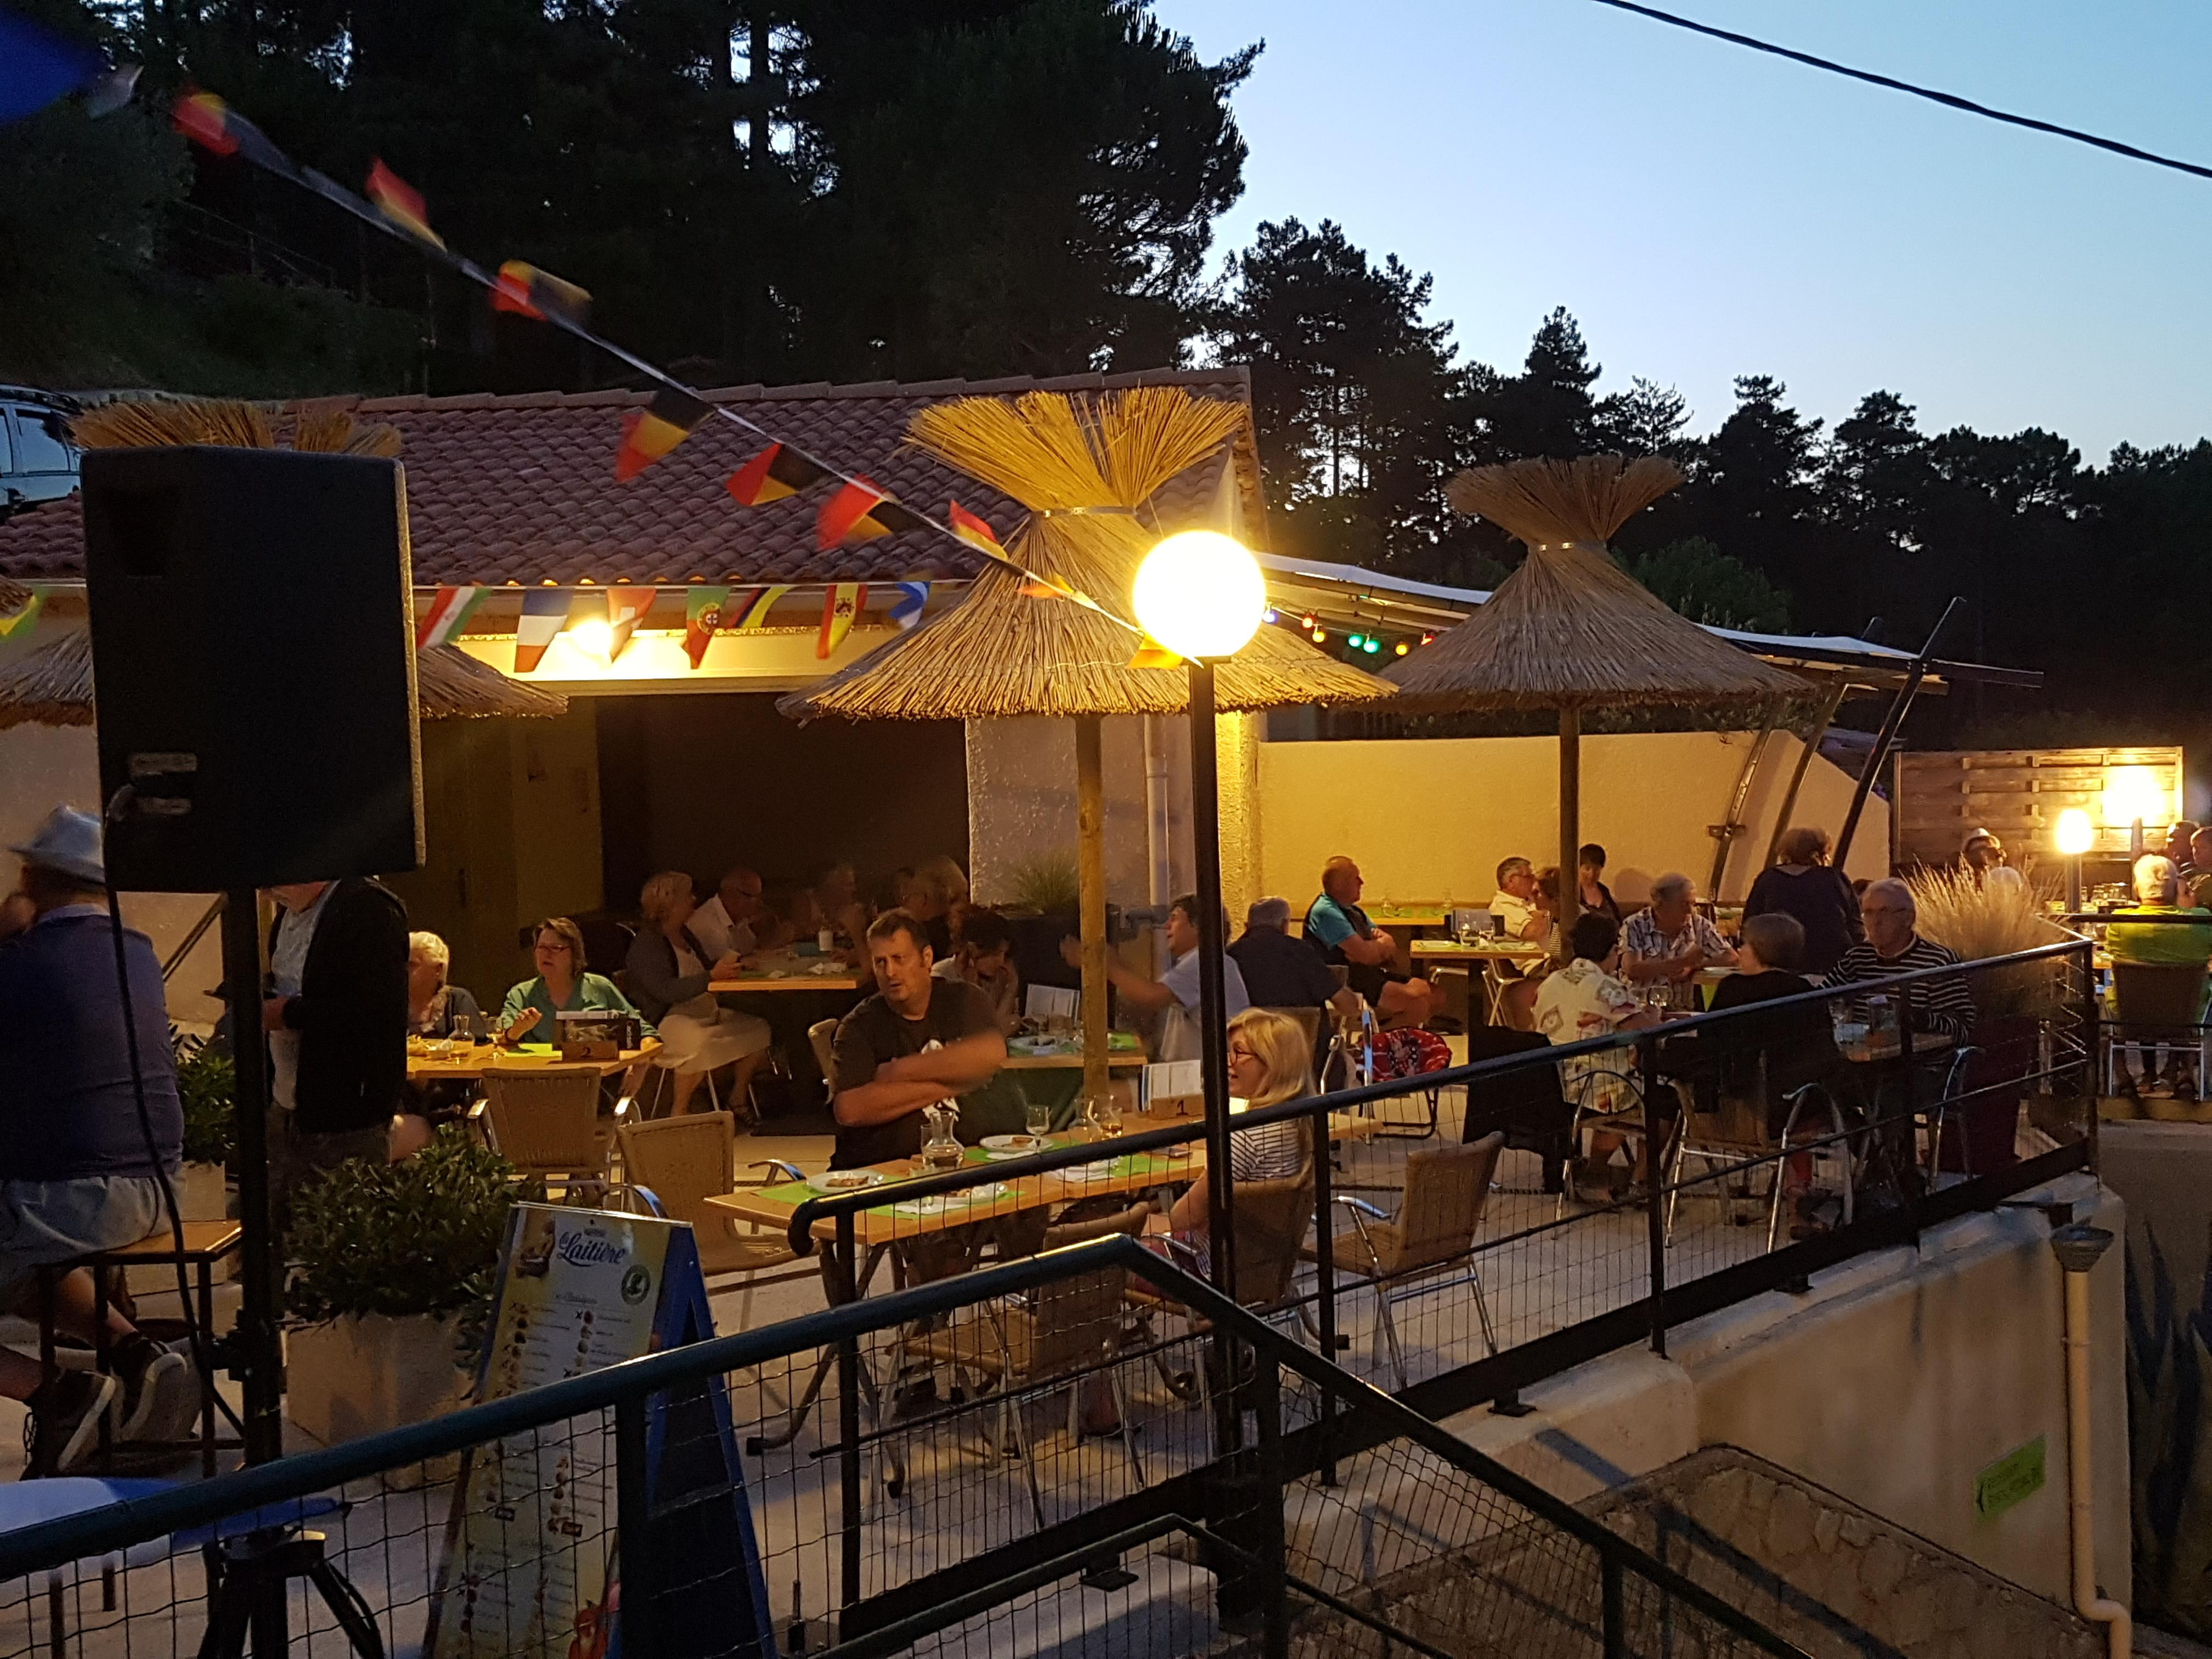 Entertainment organised Camping Les Pins D'ucel - Ucel